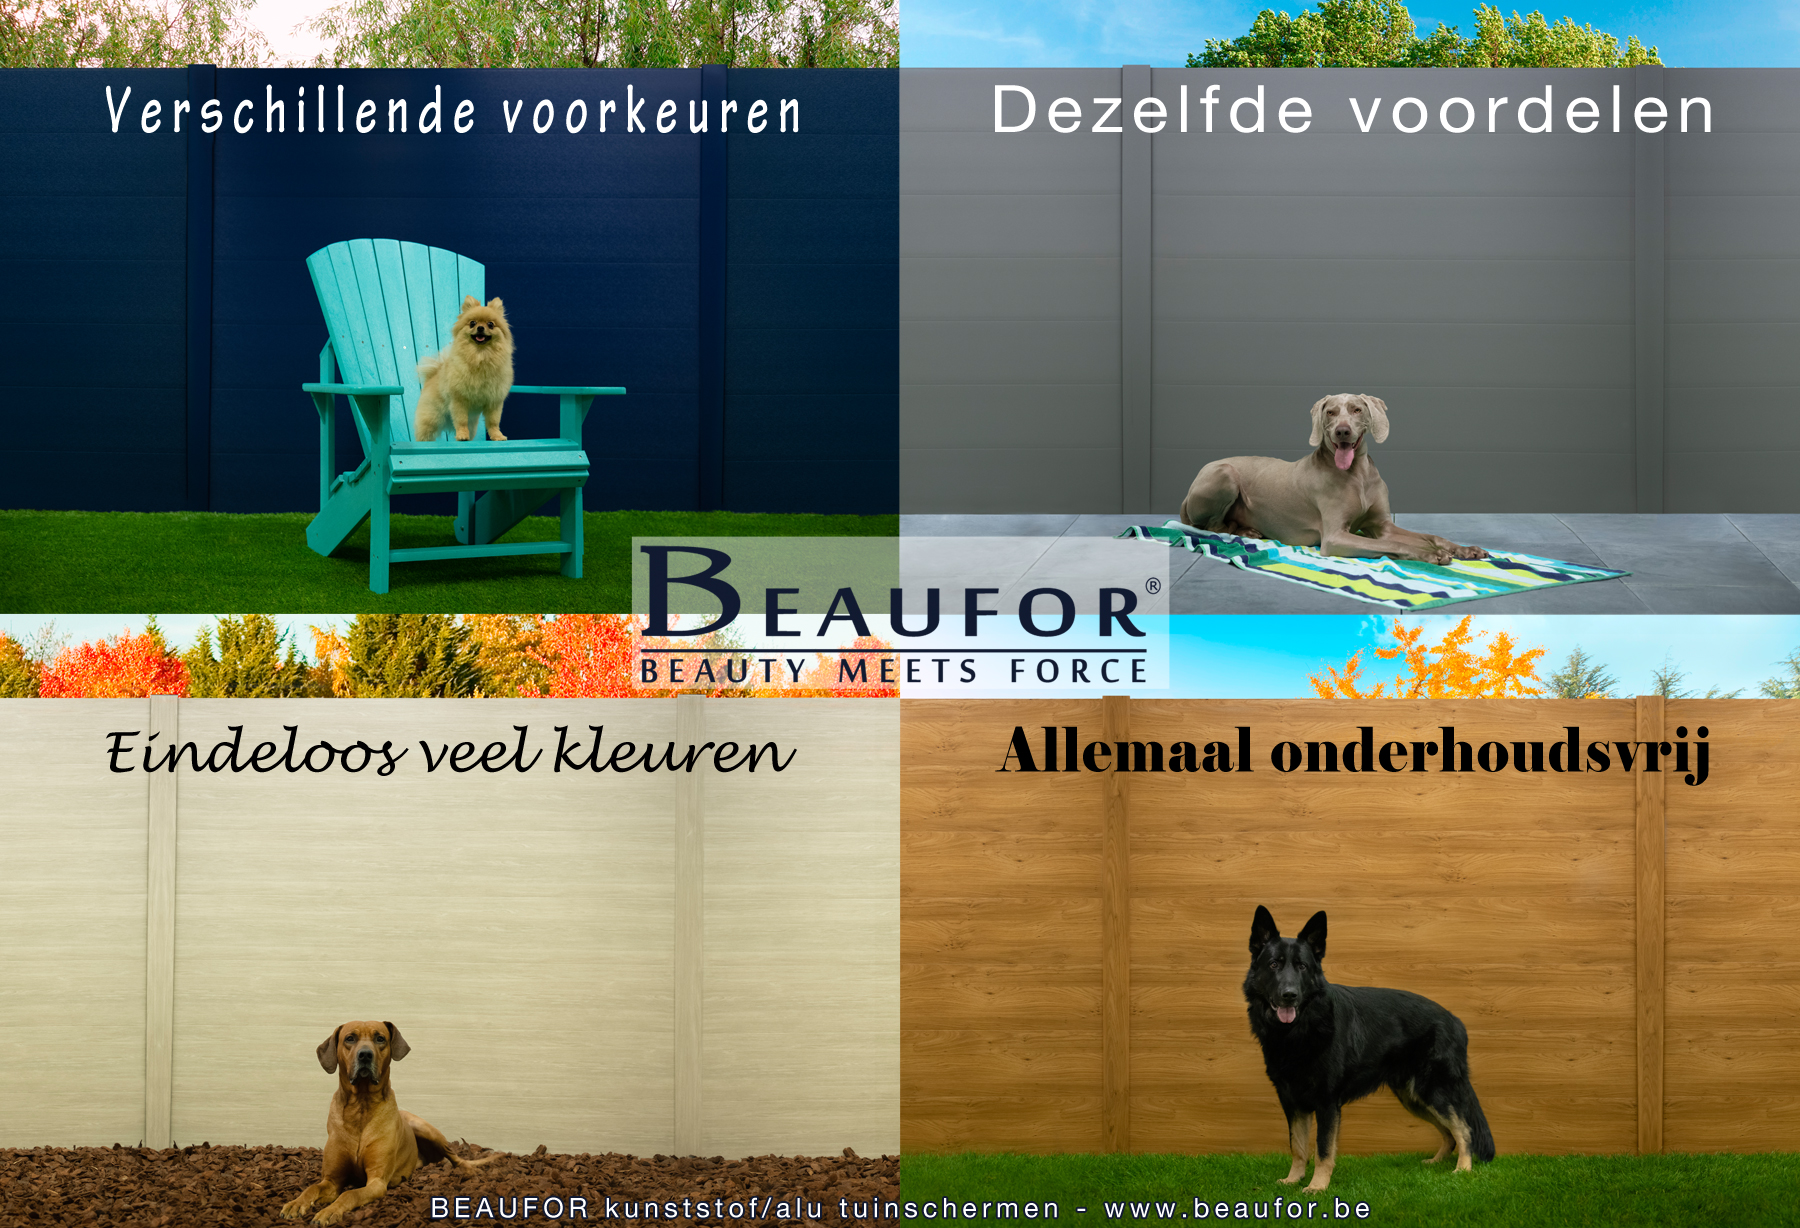 BEAUFOR meets dogs